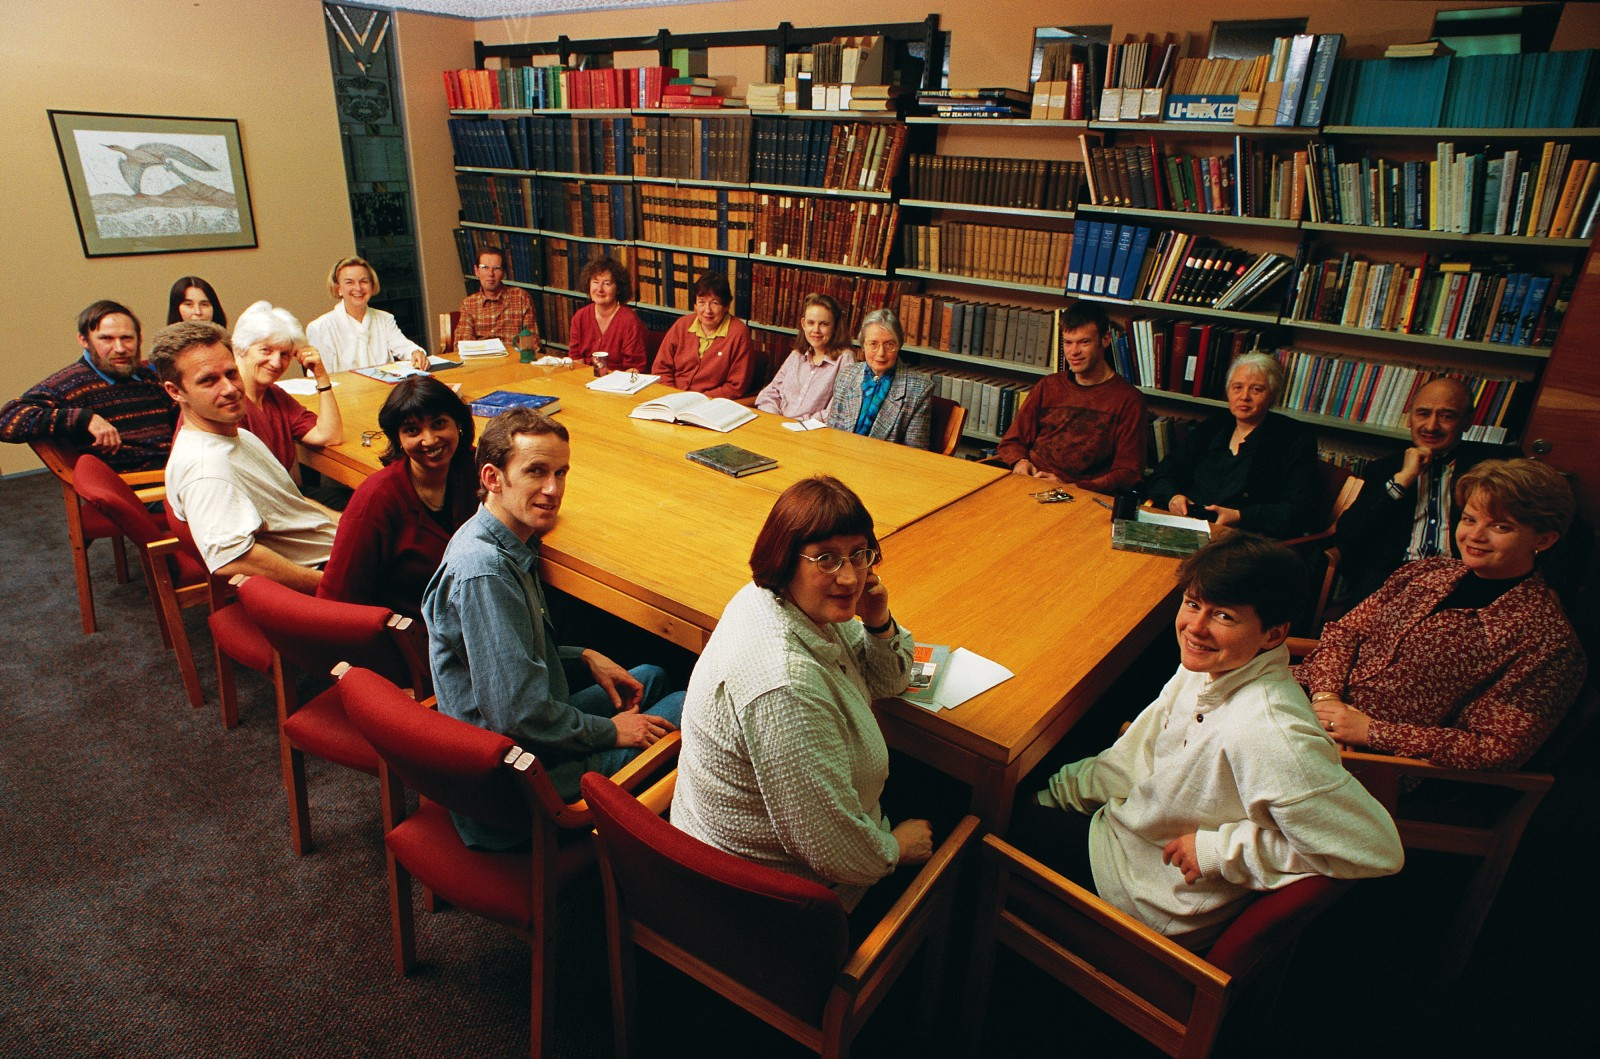 Since work began on the Dictionary of New Zealand Biography in 1983, production of what has become New Zealand's biggest historical project has been a remarkably collective enterprise. Under the leadership of general editor Claudia Orange (at head of table, left), dictionary staff at the Department of Internal Affairs draw on the efforts of more than 1000 writers and researchers across the country.